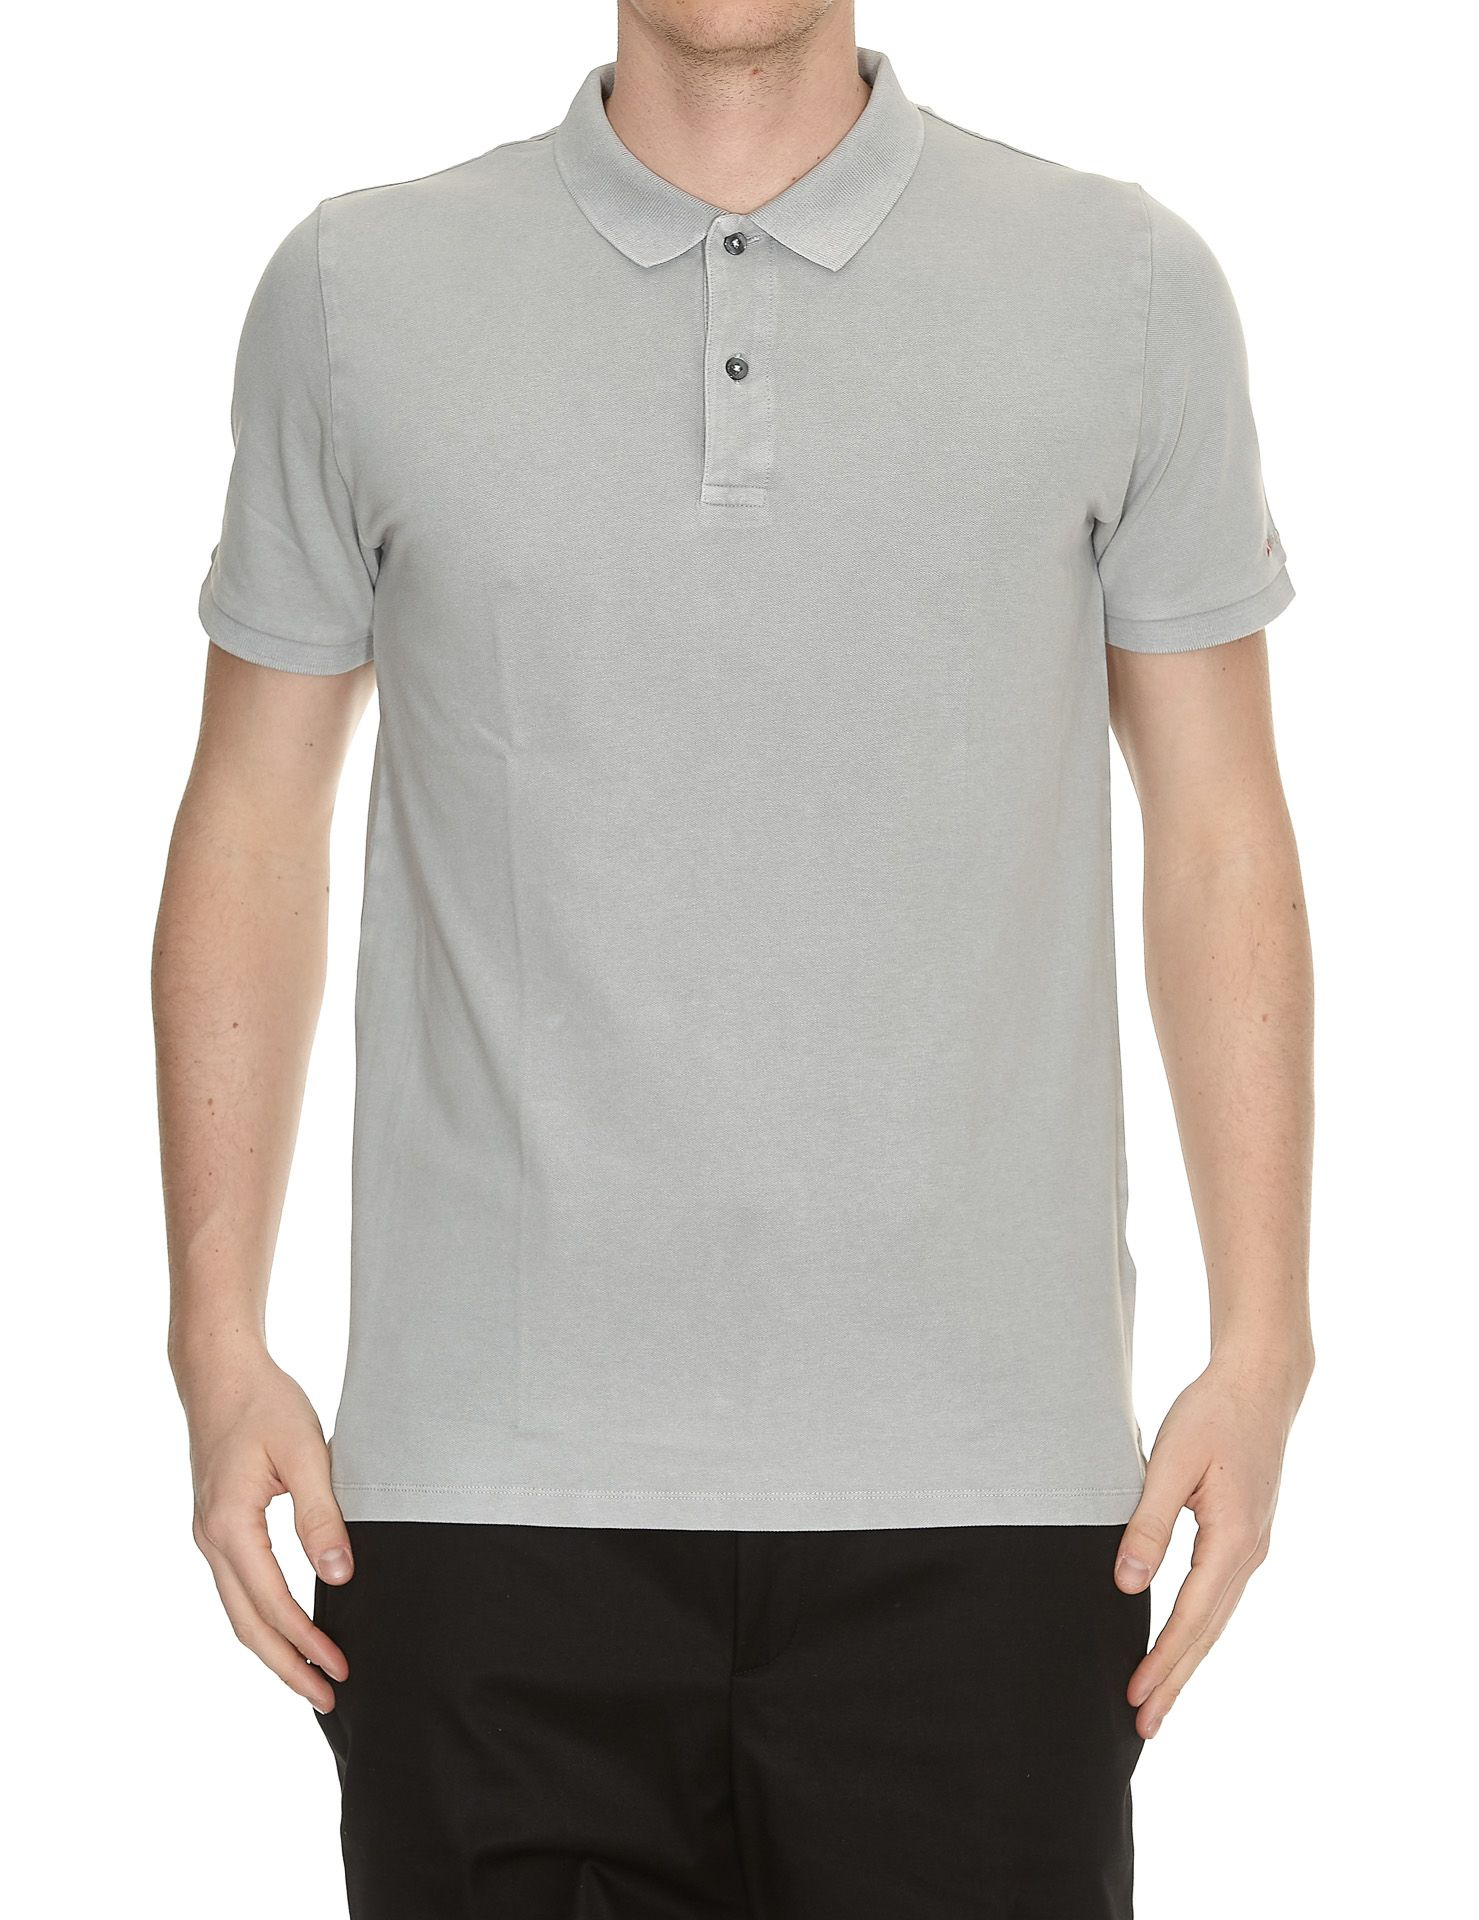 TOPWEAR - Polo shirts Historic Research For Nice Discount Best Place 2018 Newest Sale Online DRXxjK